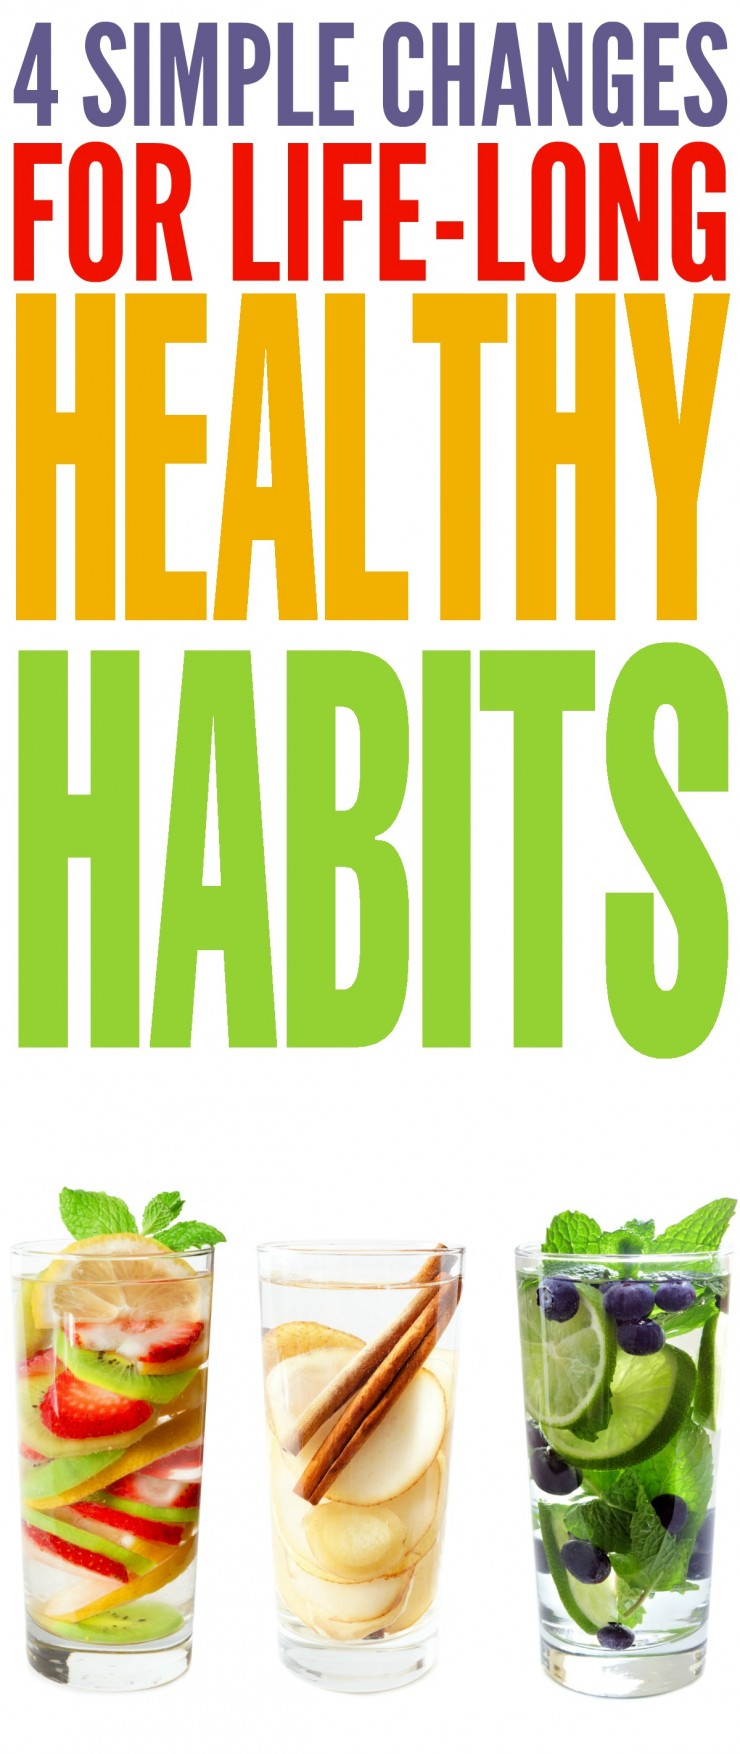 4 Simple Changes for Life-Long Healthy Habits